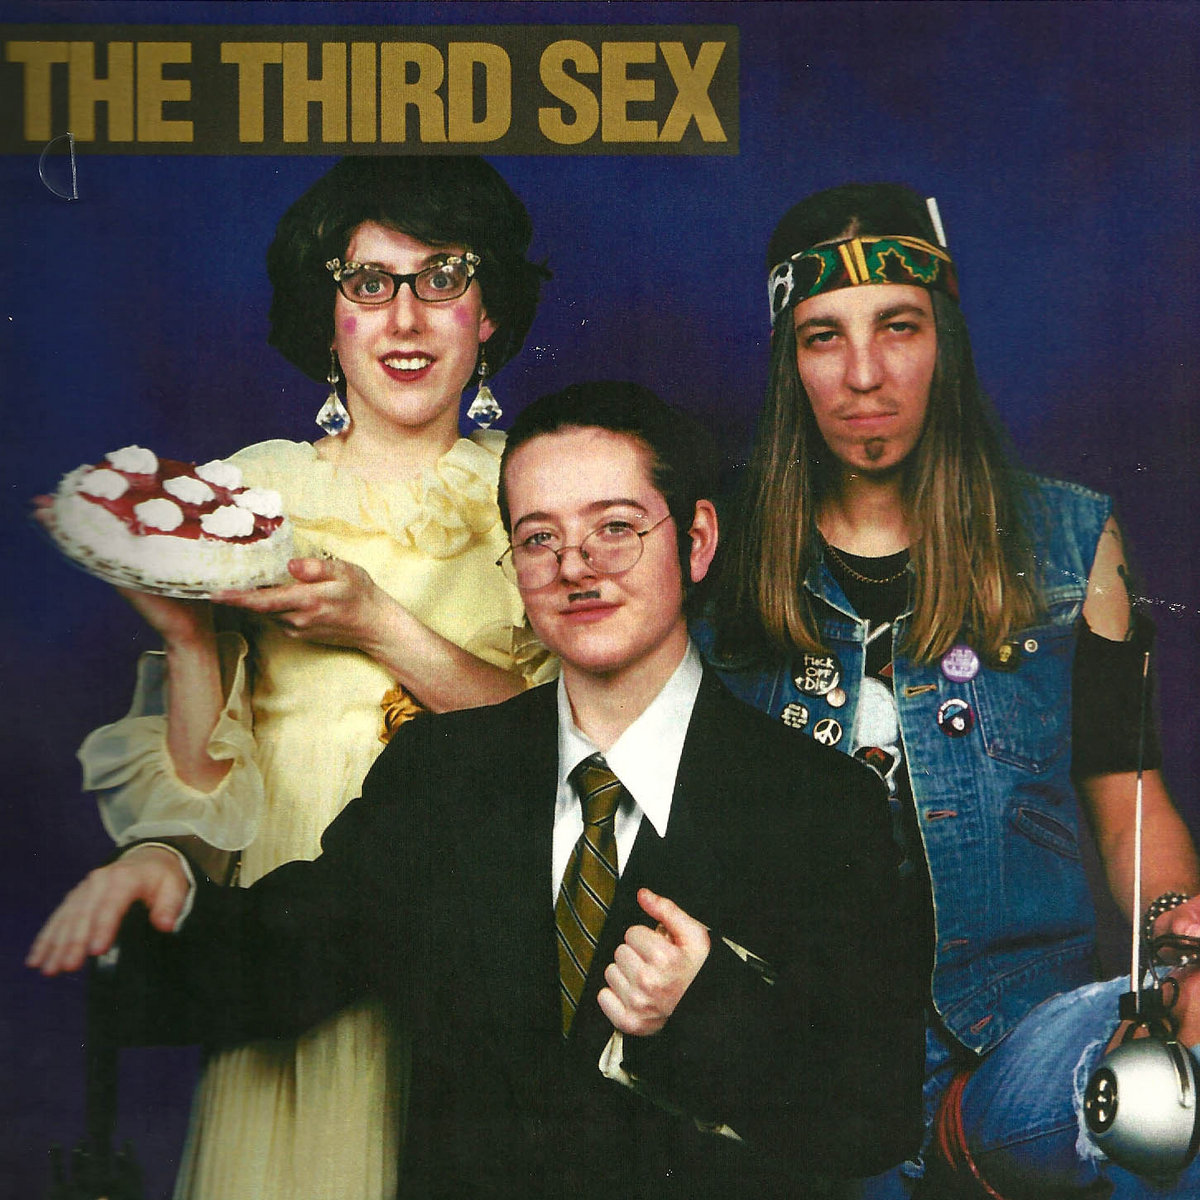 The third sex band